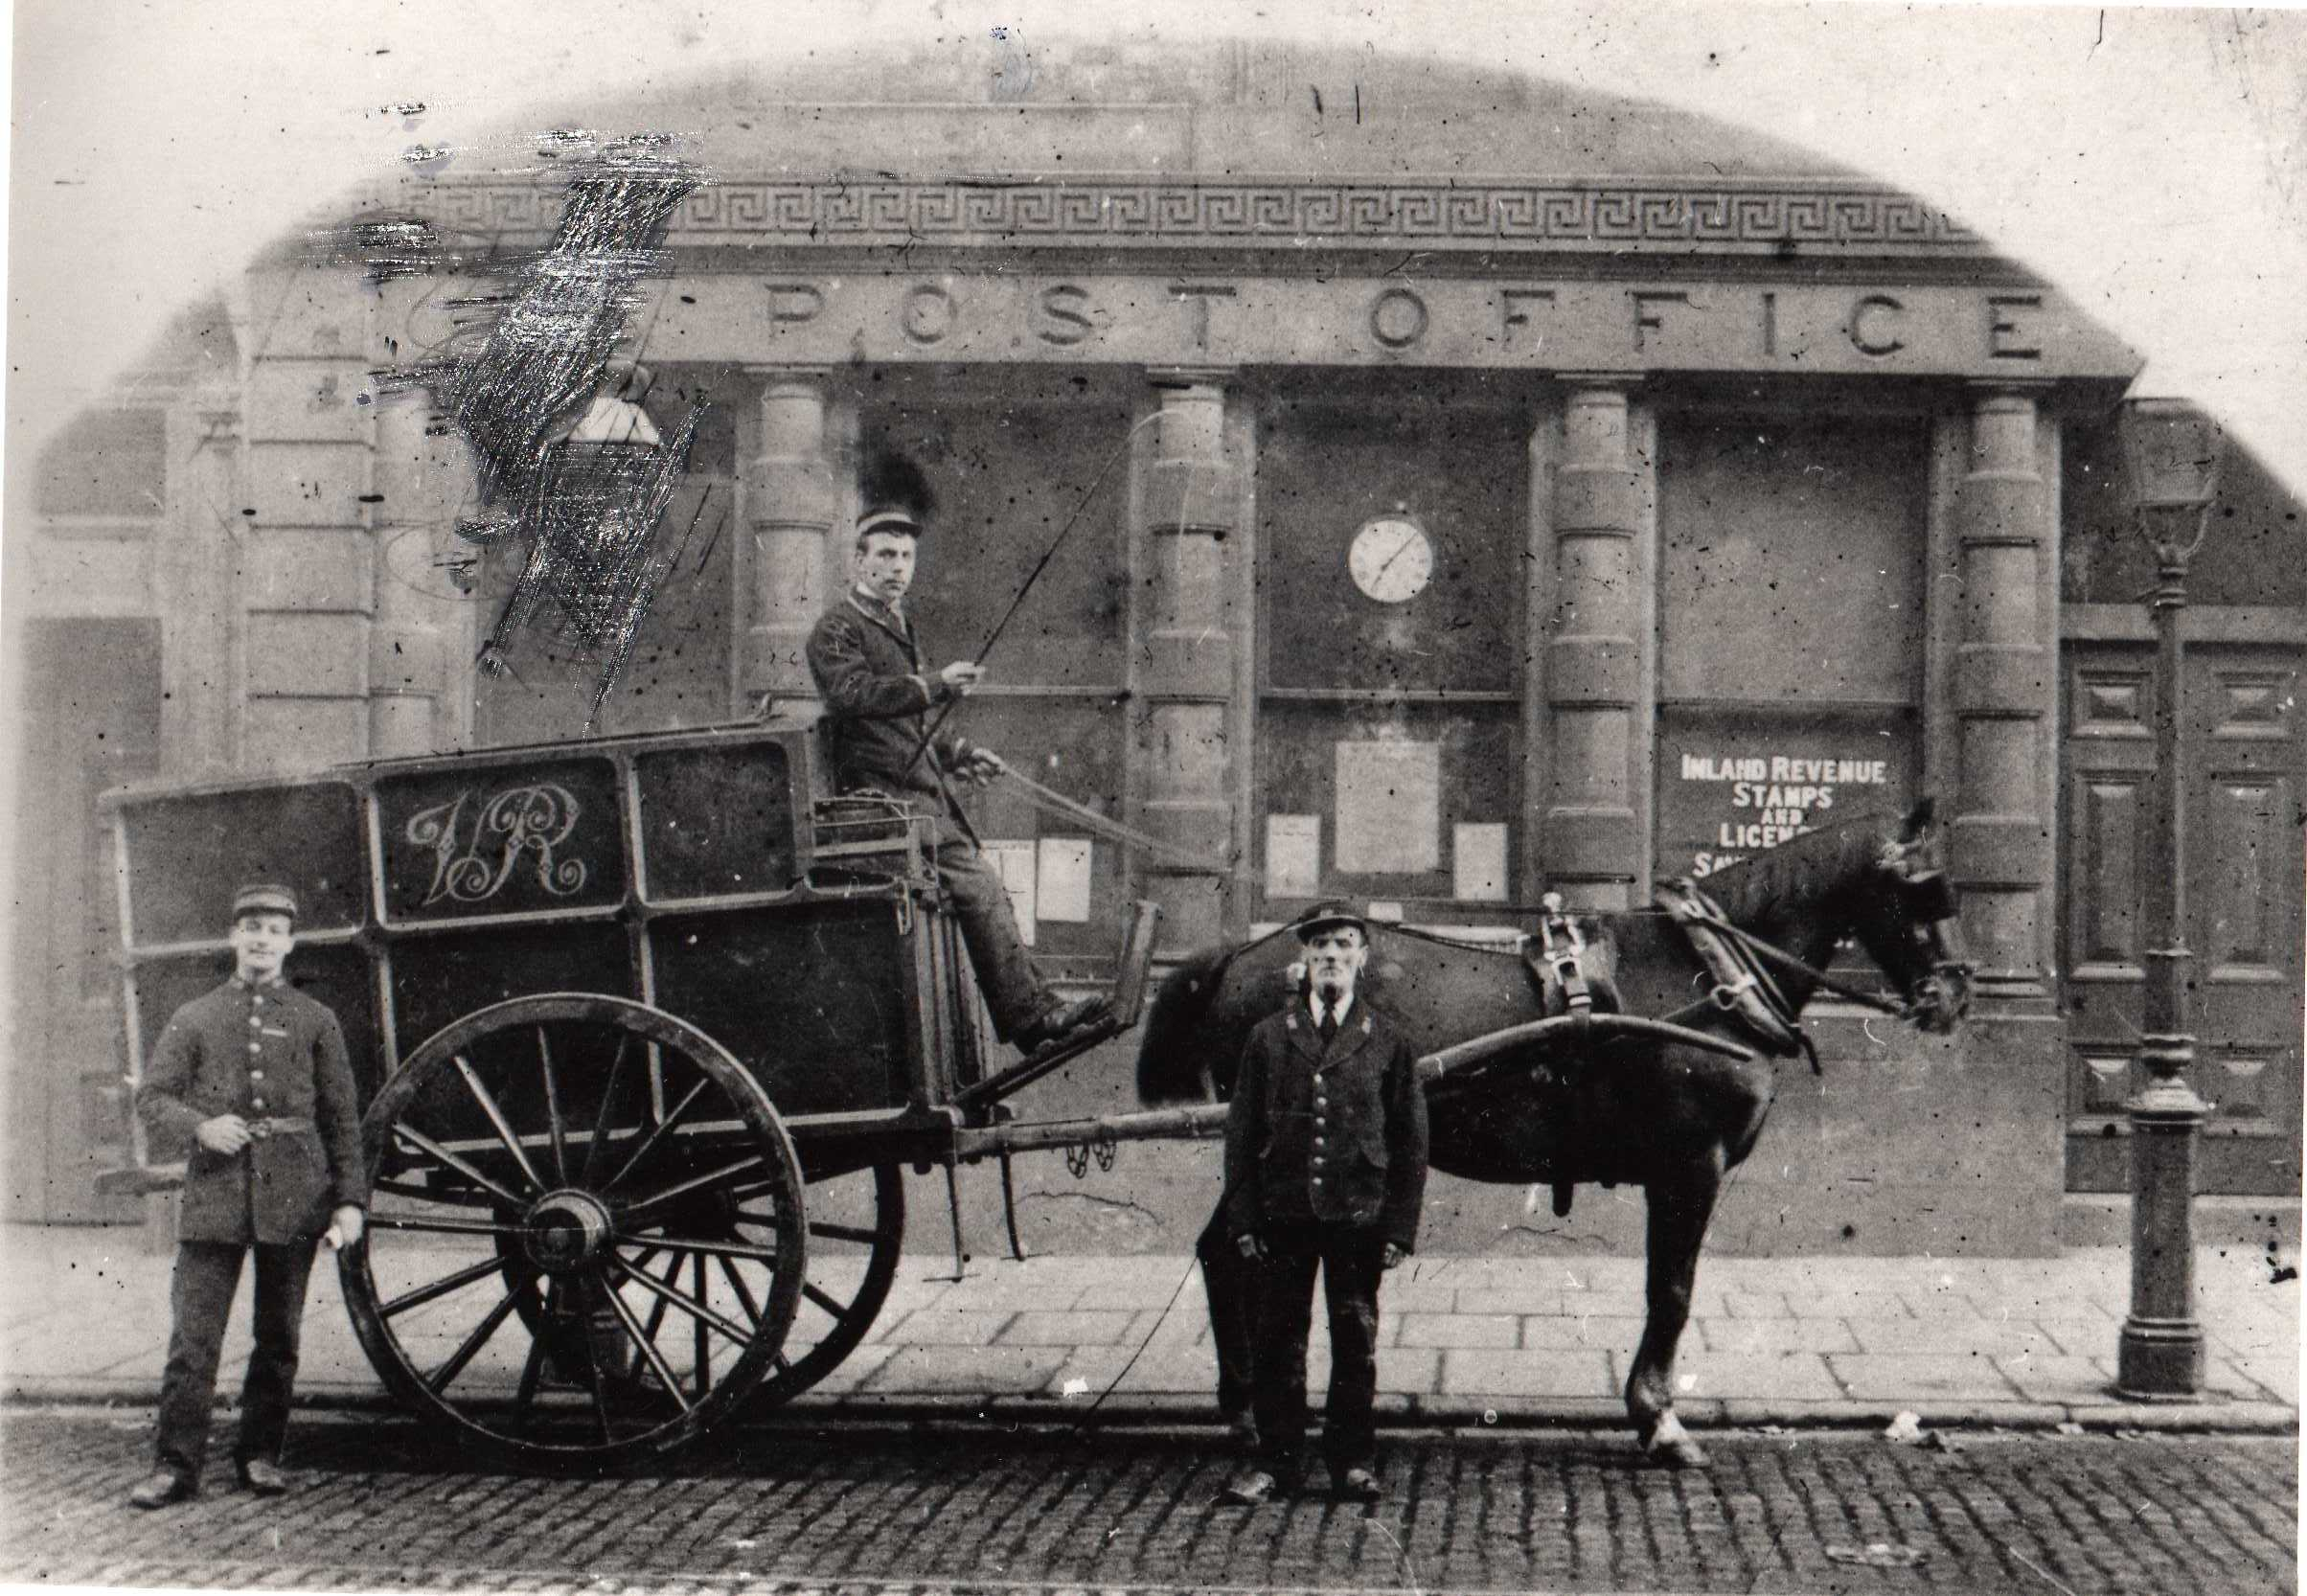 Fishergate Post Office circa 1890